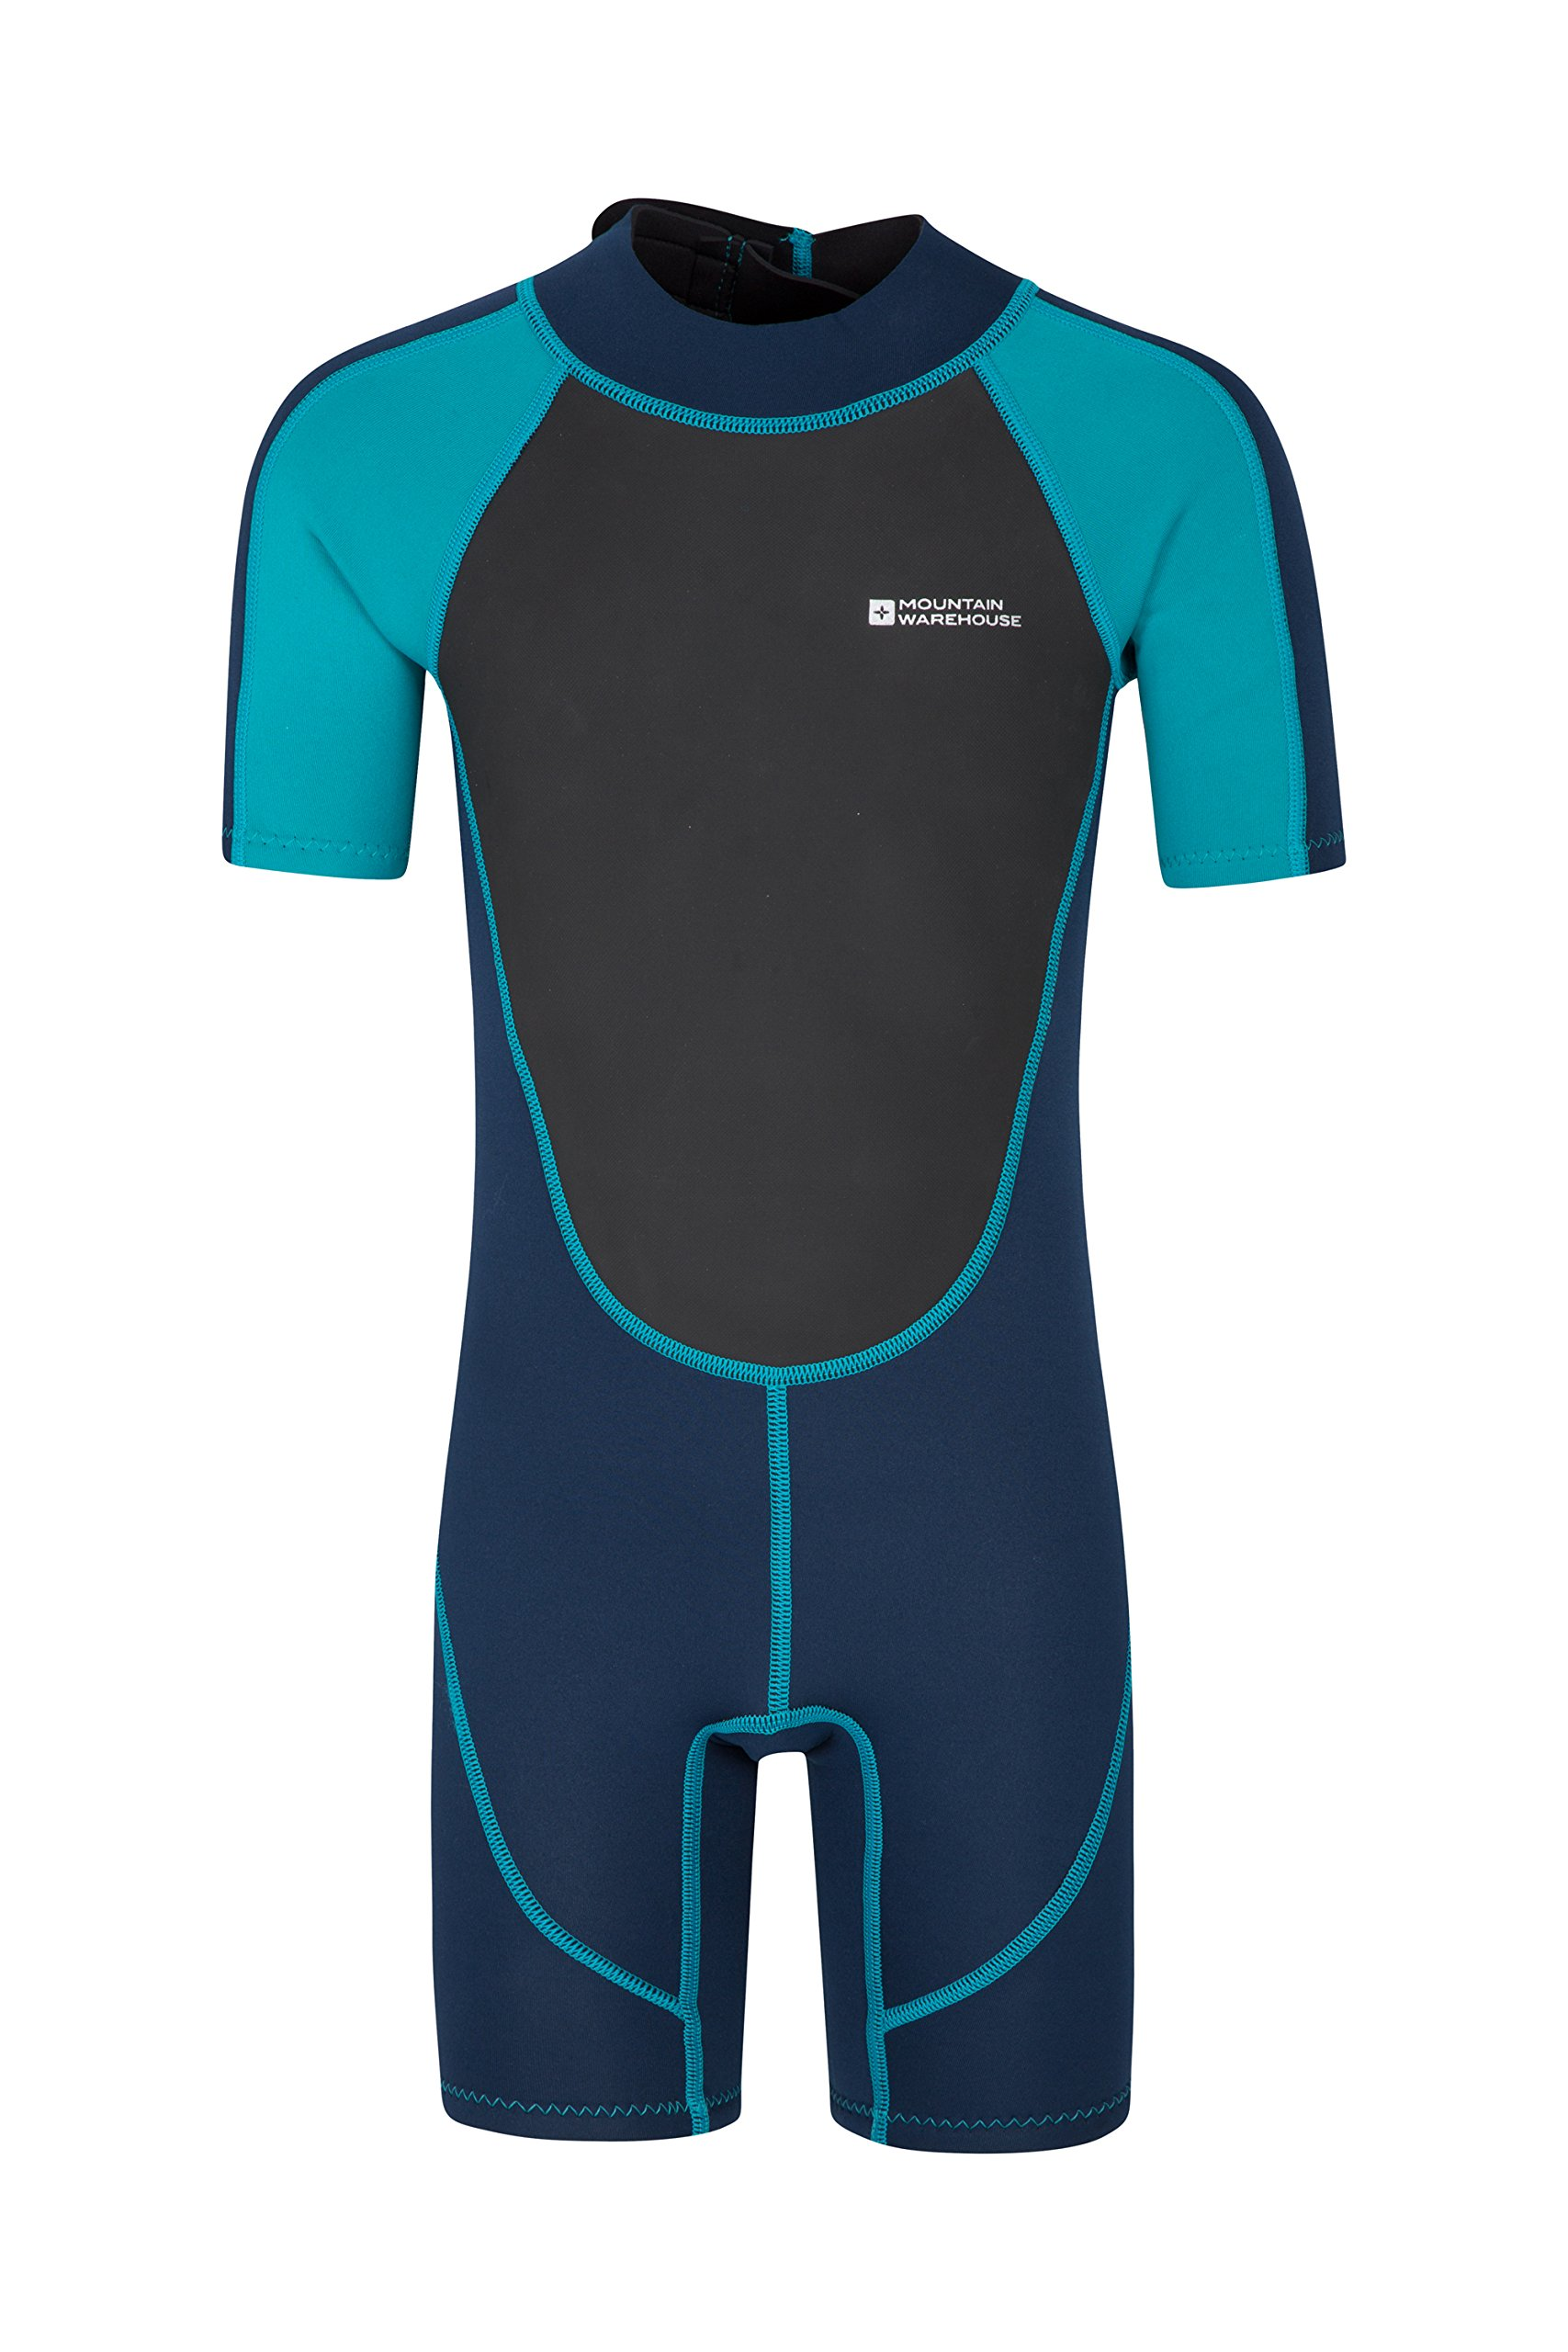 Mountain Warehouse Junior Shorty Wetsuit - Neoprene Kids Wetsuit Teal 3-4 years